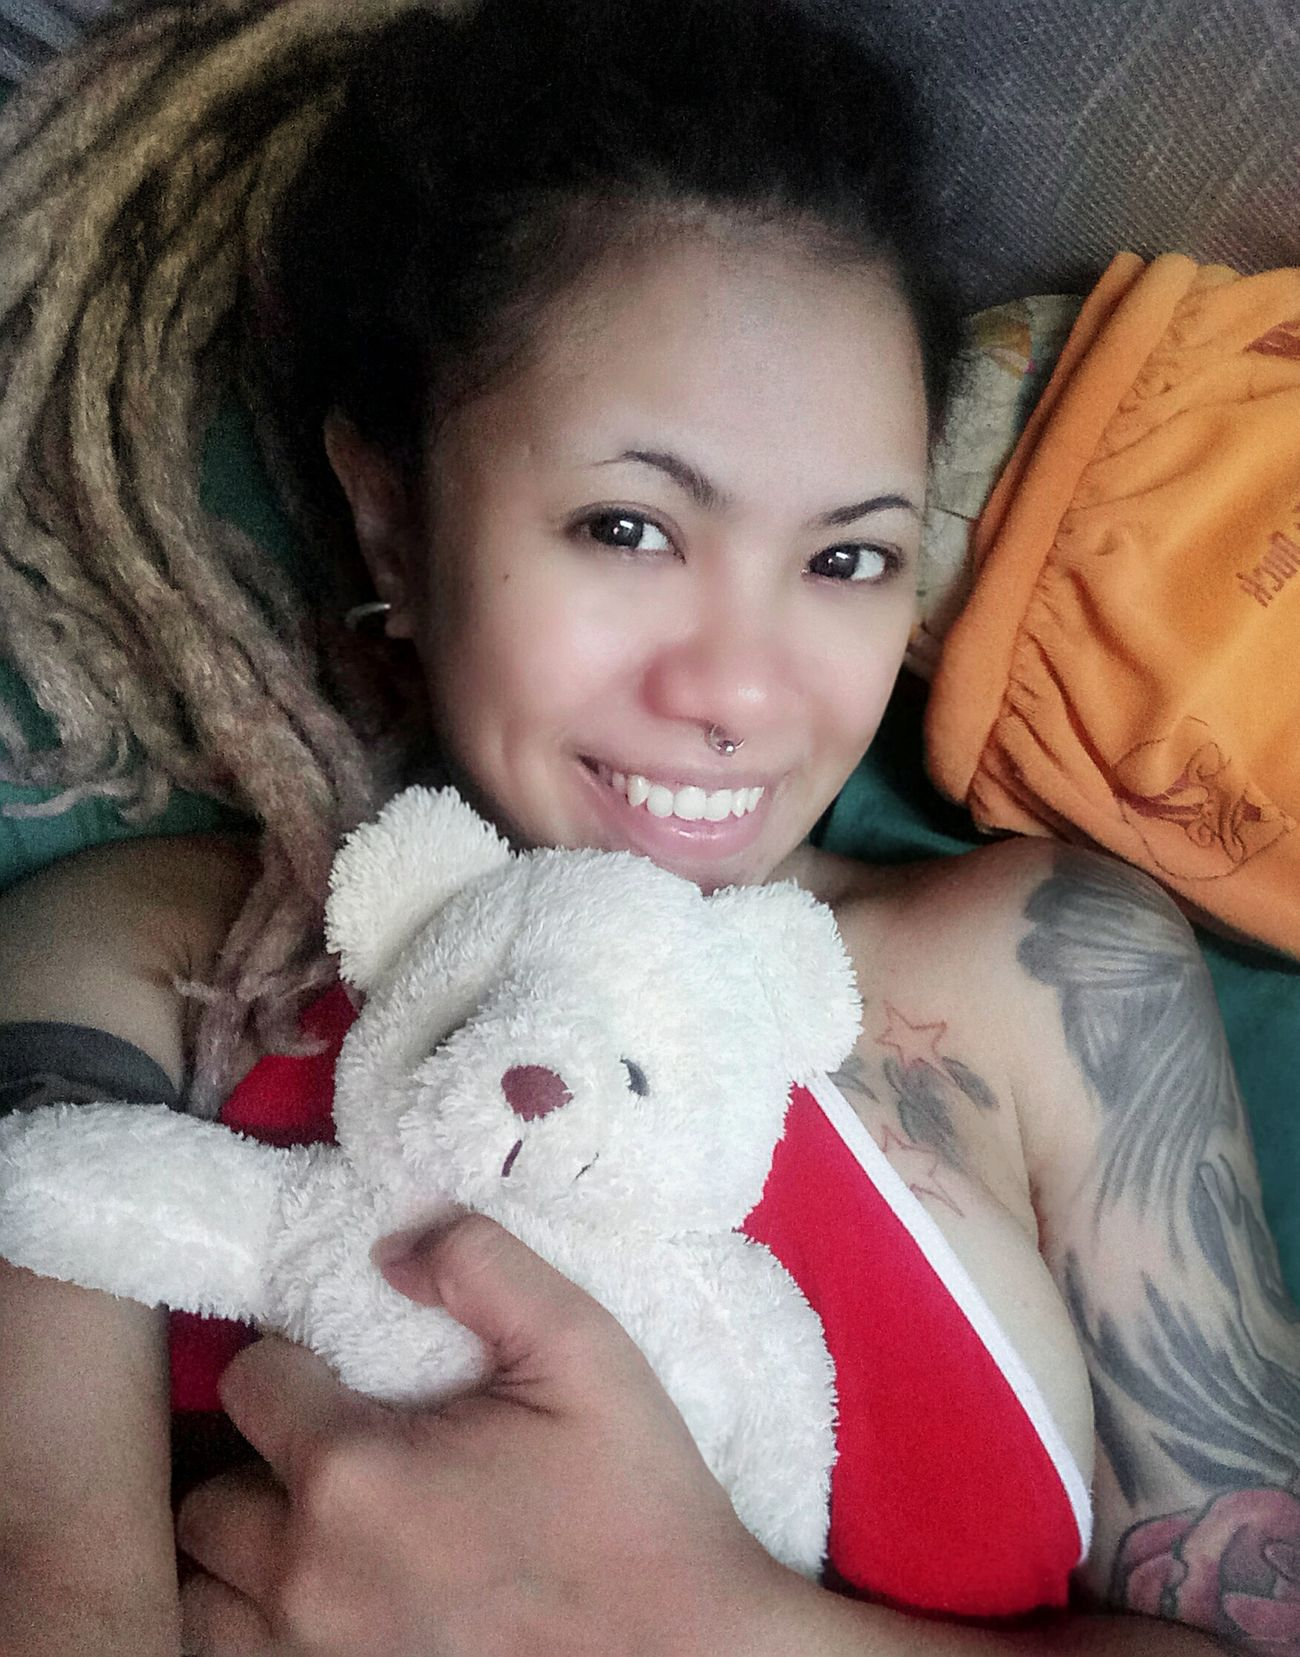 Just hug with my buddy! 🐻😊 Looking At Camera Smiling Withoutmakeup Beauty Asian Girl Tattoos Dreadlocks Sexythaigirl Newhair Crazygirl First Eyeem Photo Mypic ThatsMe Girlwithtattoos  Dreadlocks Girl Sexyasiangirl Hello World Beautiful People Buddy Aliennam 👽👽👽